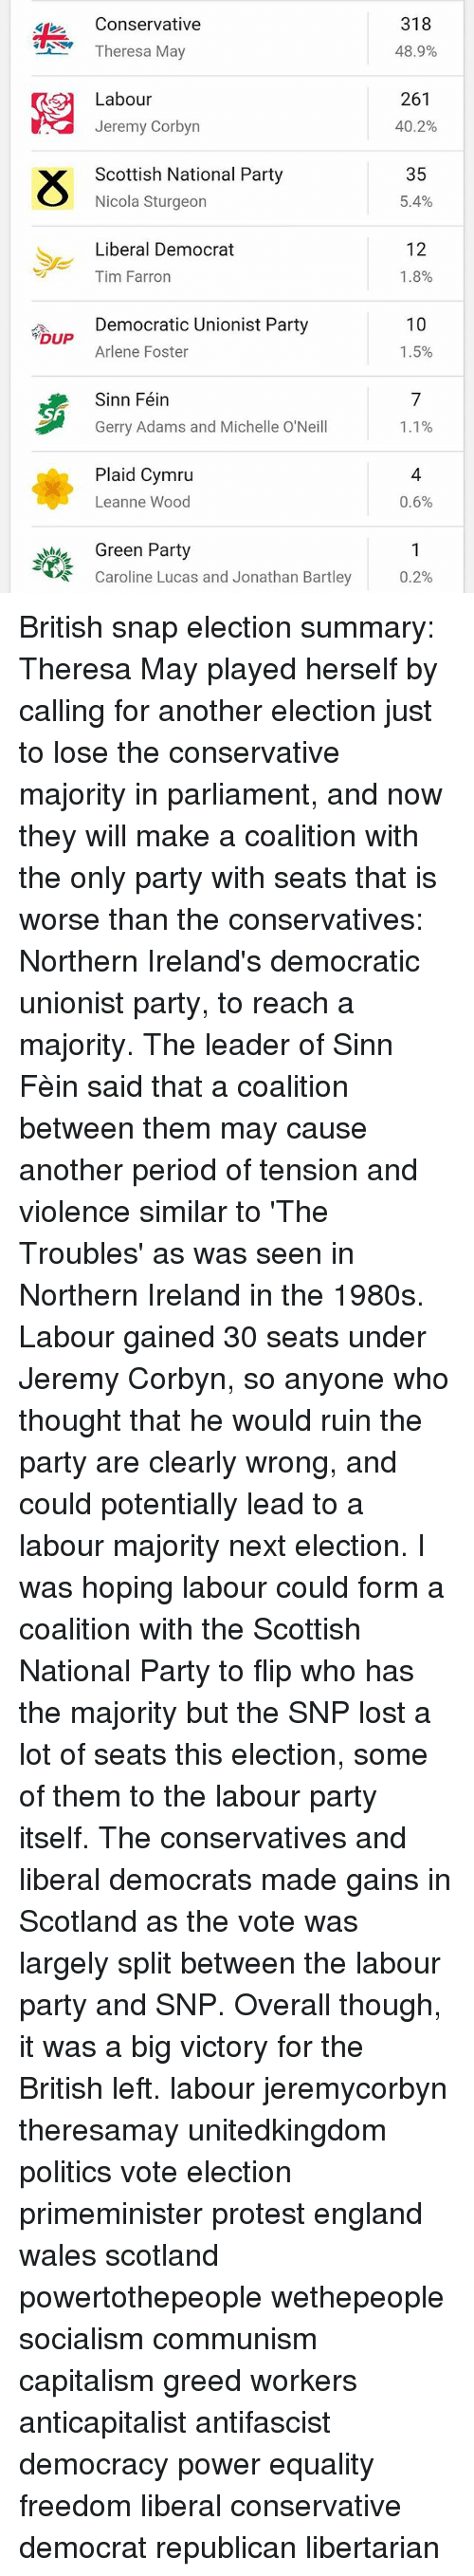 gerry adams: 4DUP  Conservative  Theresa May  Labour  Jeremy Corbyn  Scottish National Party  Nicola Sturgeon  Liberal Democrat  Tim Farron  Democratic Unionist Party  Arlene Foster  Sinn Féin  Gerry Adams and Michelle O'Neill  Plaid Cymru  Leanne Wood  Green Party  Caroline Lucas and Jonathan Bartley  318  48.9%  261  40.2%  35  5.4%  12  1.8%  10  1.5%  1.1%  0.6%  0.2% British snap election summary: Theresa May played herself by calling for another election just to lose the conservative majority in parliament, and now they will make a coalition with the only party with seats that is worse than the conservatives: Northern Ireland's democratic unionist party, to reach a majority. The leader of Sinn Fèin said that a coalition between them may cause another period of tension and violence similar to 'The Troubles' as was seen in Northern Ireland in the 1980s. Labour gained 30 seats under Jeremy Corbyn, so anyone who thought that he would ruin the party are clearly wrong, and could potentially lead to a labour majority next election. I was hoping labour could form a coalition with the Scottish National Party to flip who has the majority but the SNP lost a lot of seats this election, some of them to the labour party itself. The conservatives and liberal democrats made gains in Scotland as the vote was largely split between the labour party and SNP. Overall though, it was a big victory for the British left. labour jeremycorbyn theresamay unitedkingdom politics vote election primeminister protest england wales scotland powertothepeople wethepeople socialism communism capitalism greed workers anticapitalist antifascist democracy power equality freedom liberal conservative democrat republican libertarian